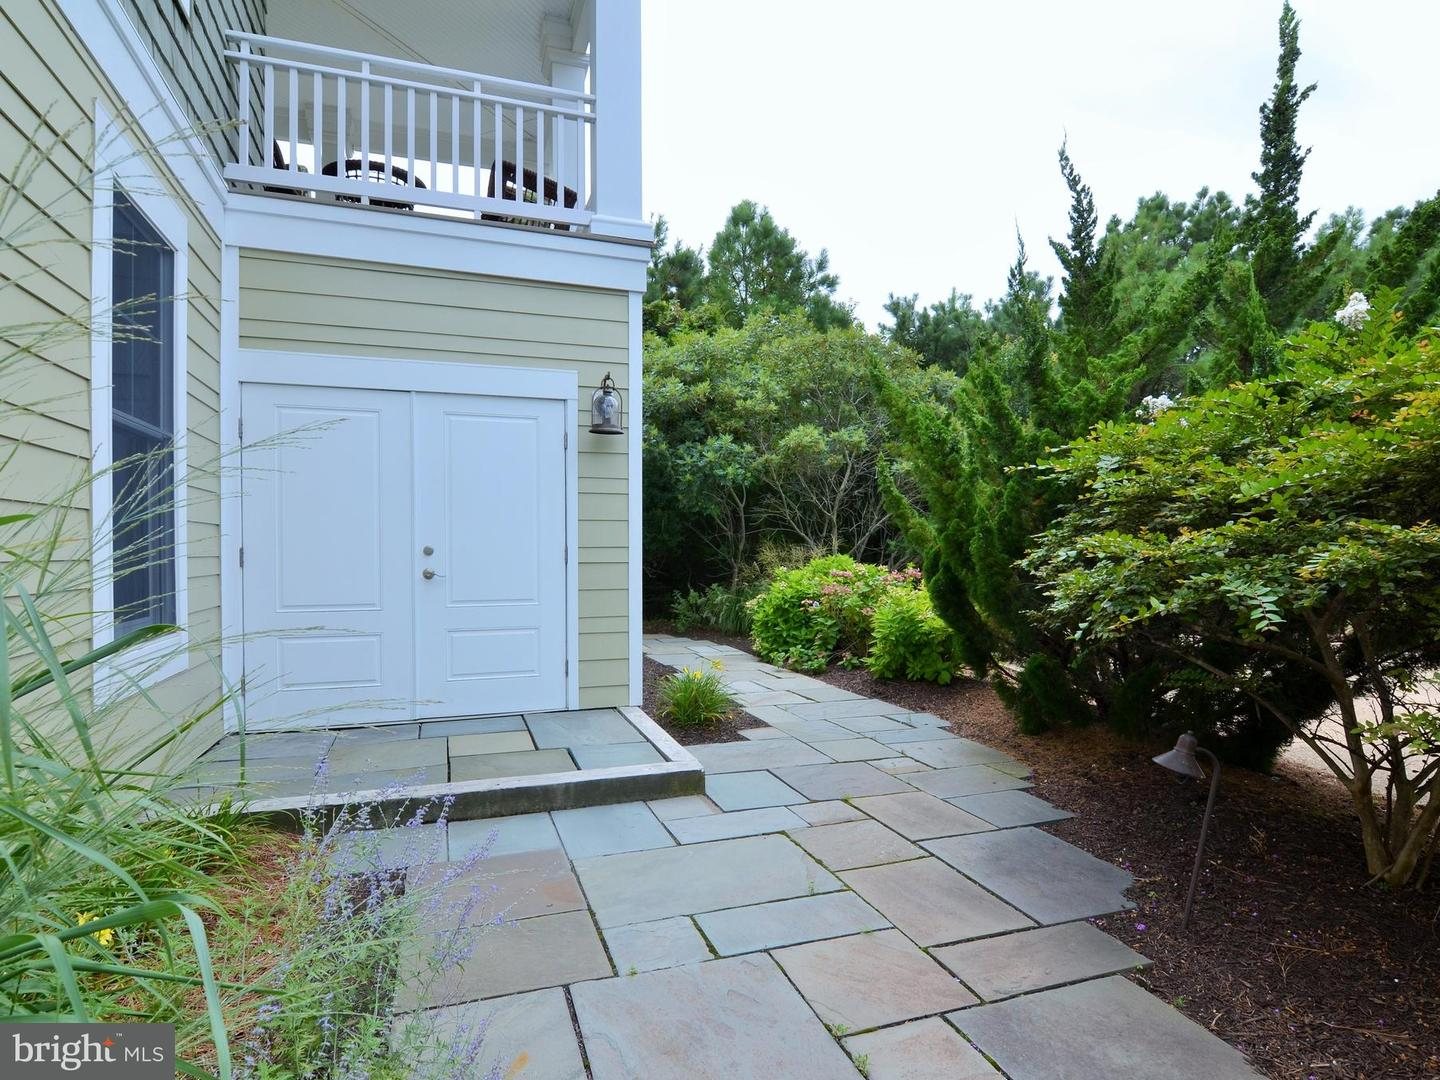 1002293530-300500804873-2018-09-25-15-08-24 31 Hall Ave | Rehoboth Beach, De Real Estate For Sale | MLS# 1002293530  - Suzanne Macnab